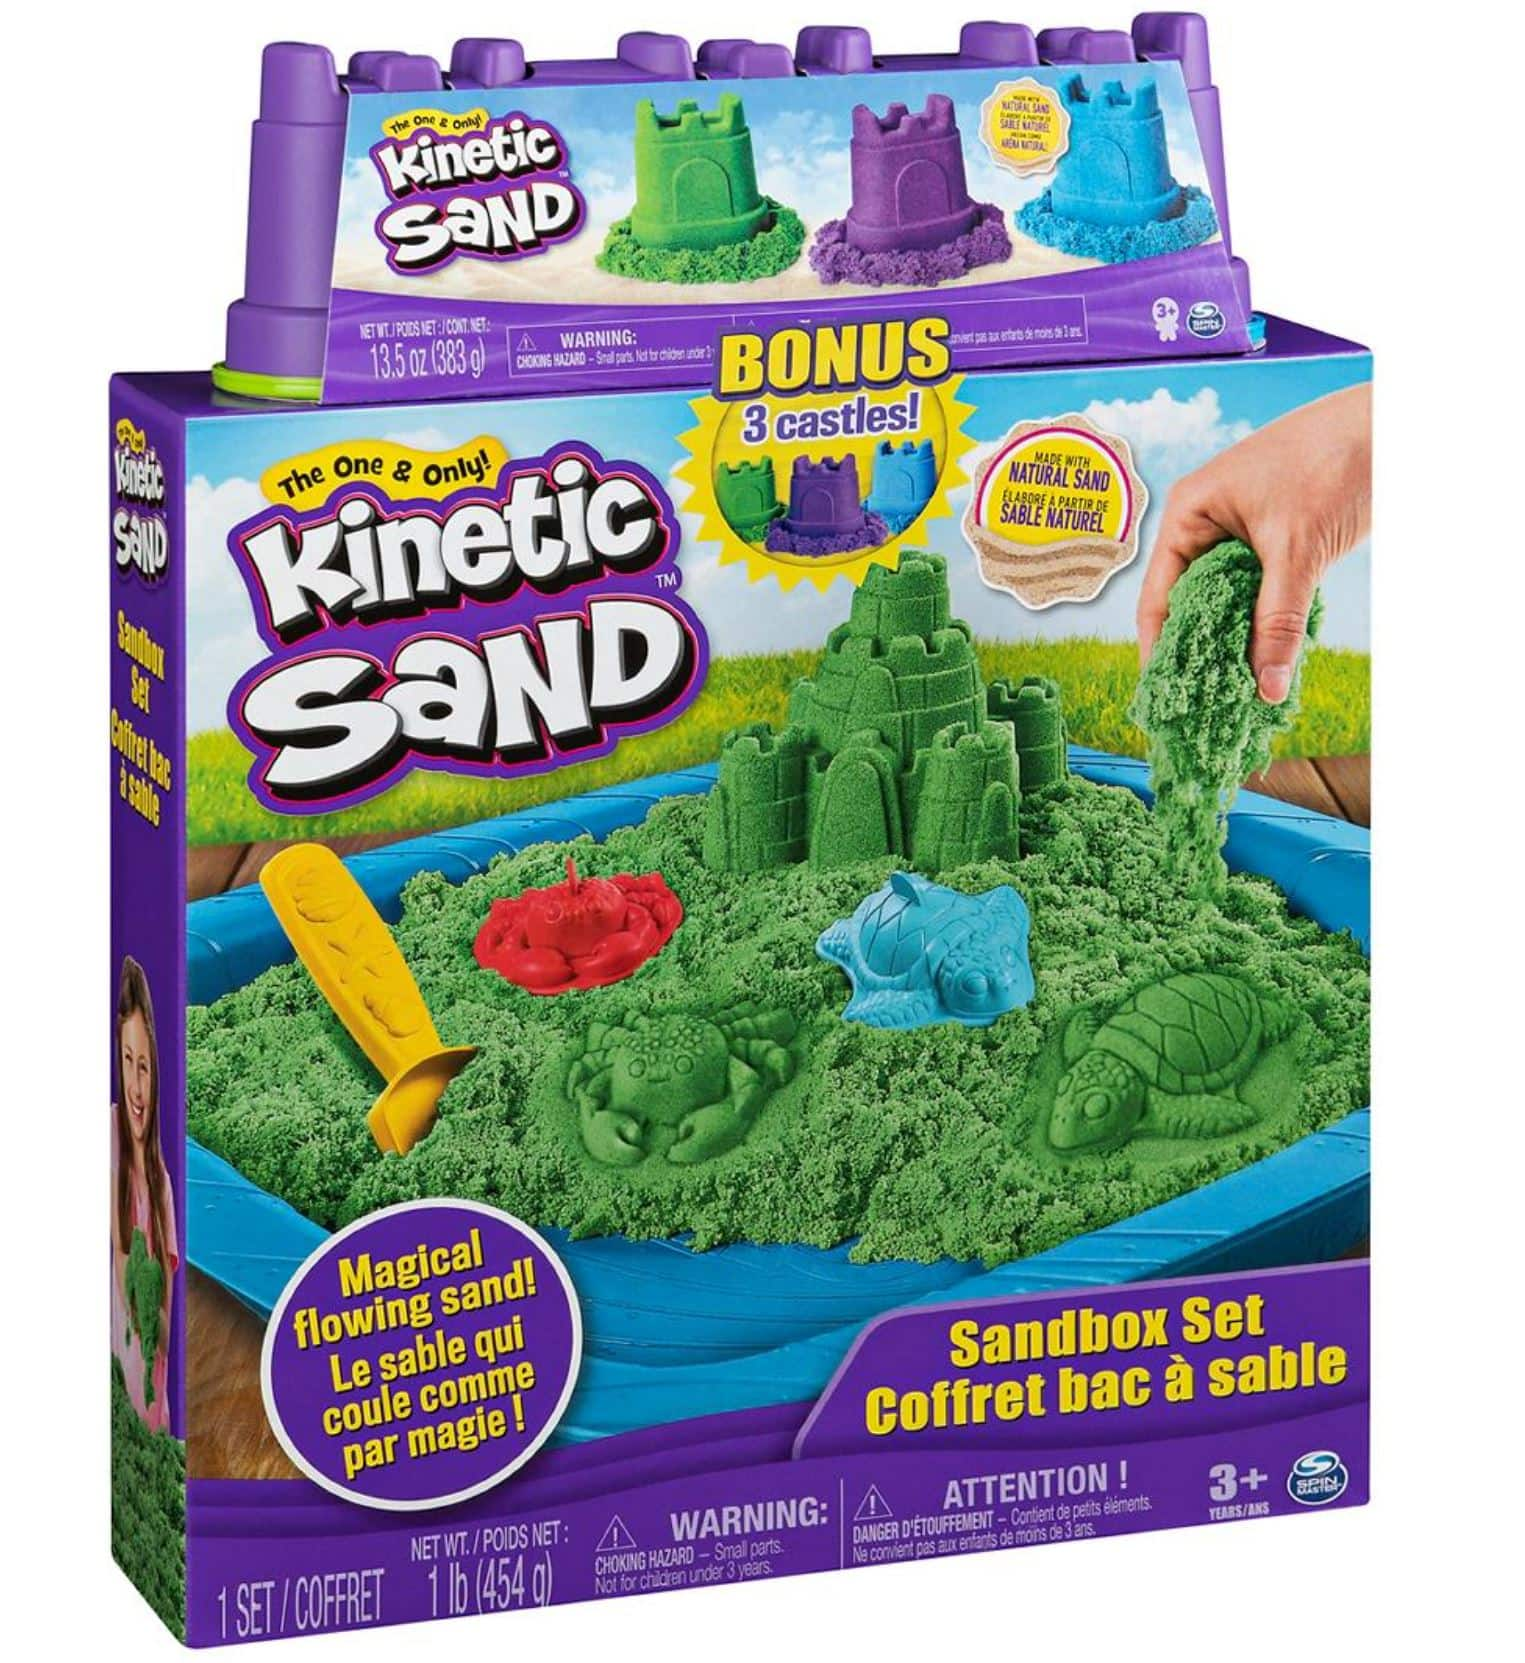 Kinetic Sand 1lb Sandbox Set with 3 Bonus Sandcastles (4.5oz each) $1.97 each for 8. BJ's Wholesale Club